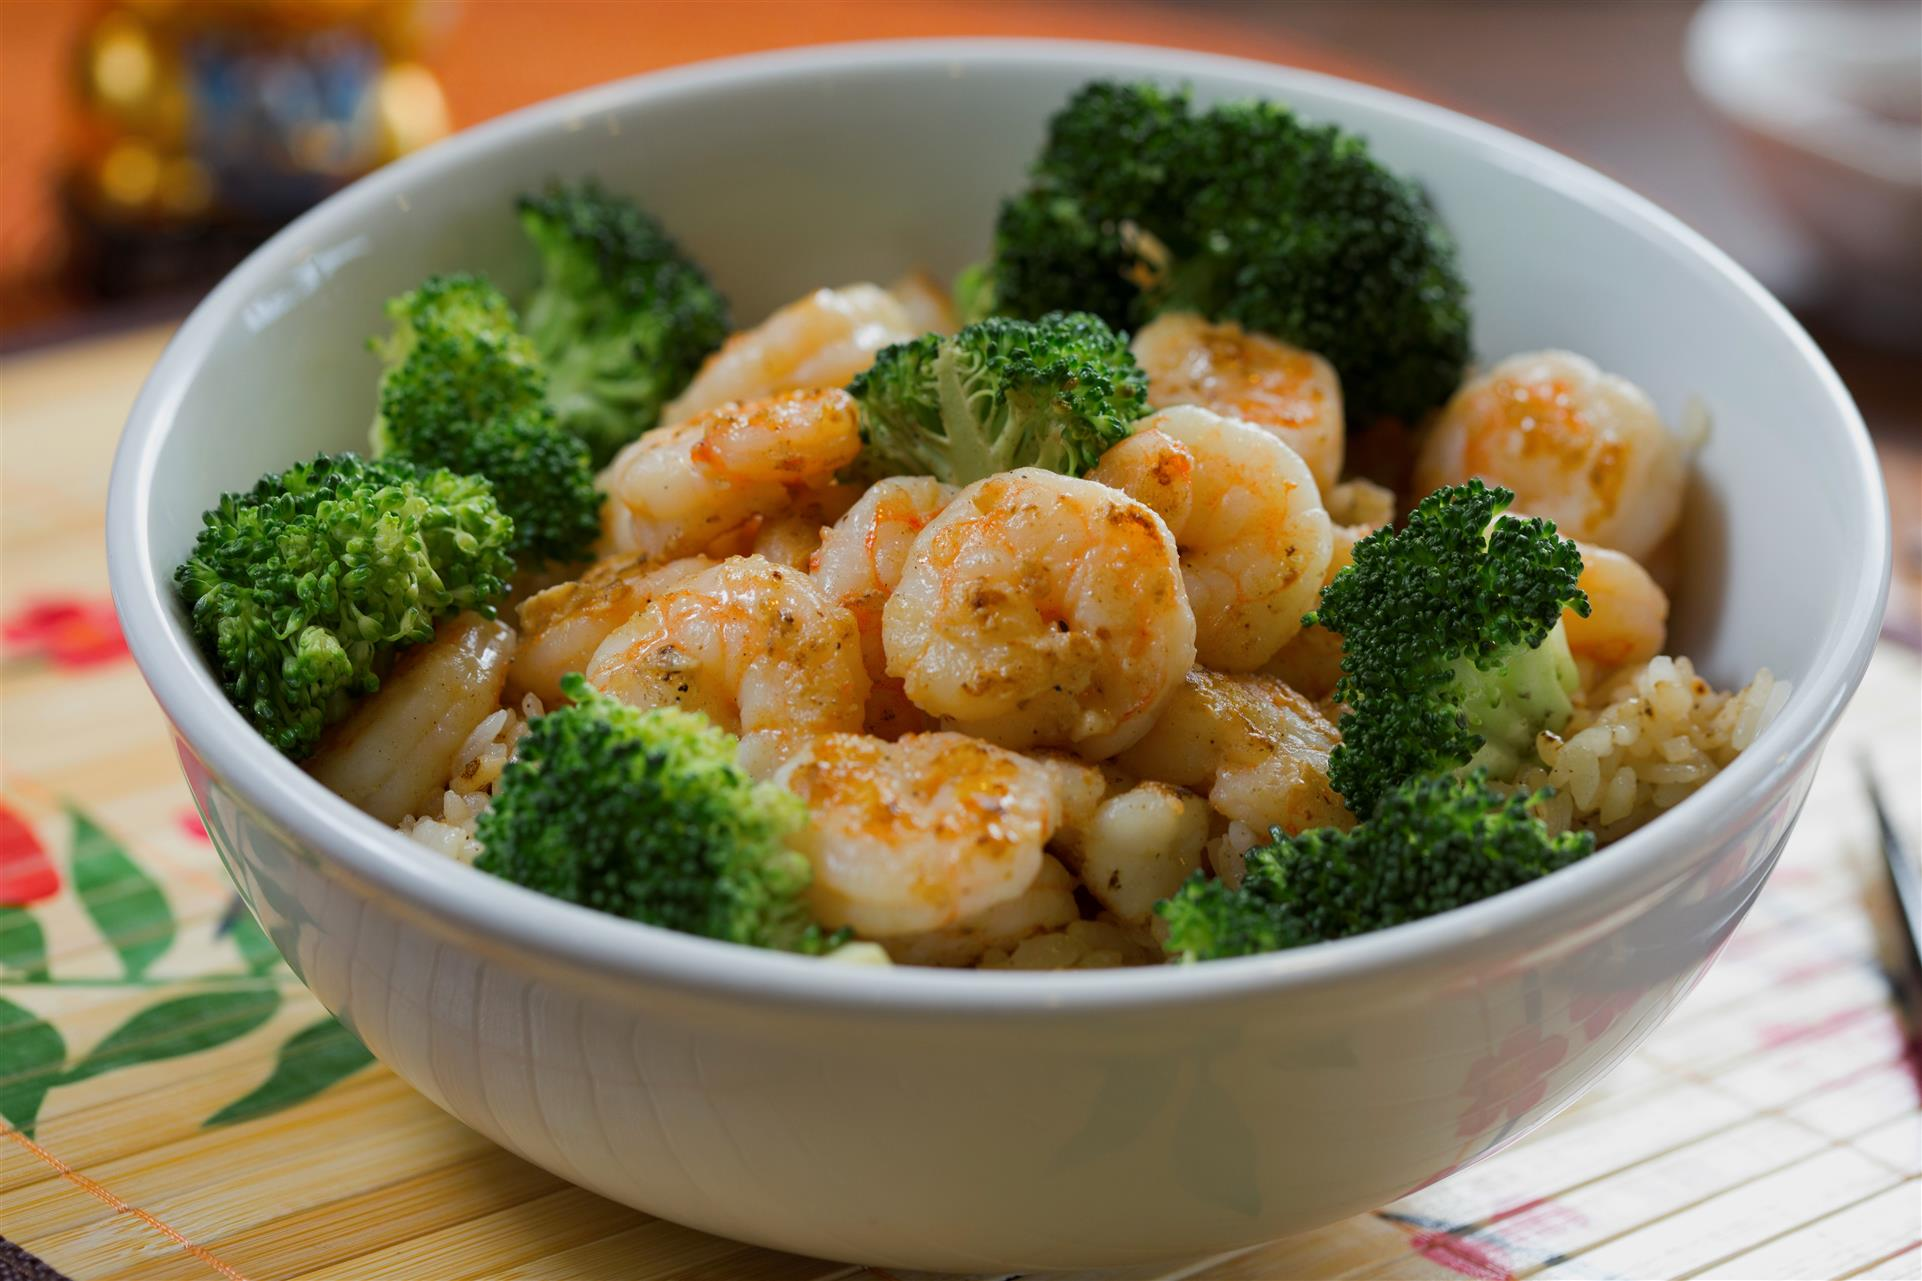 a bowl filled with cooked shrimp and vegetables